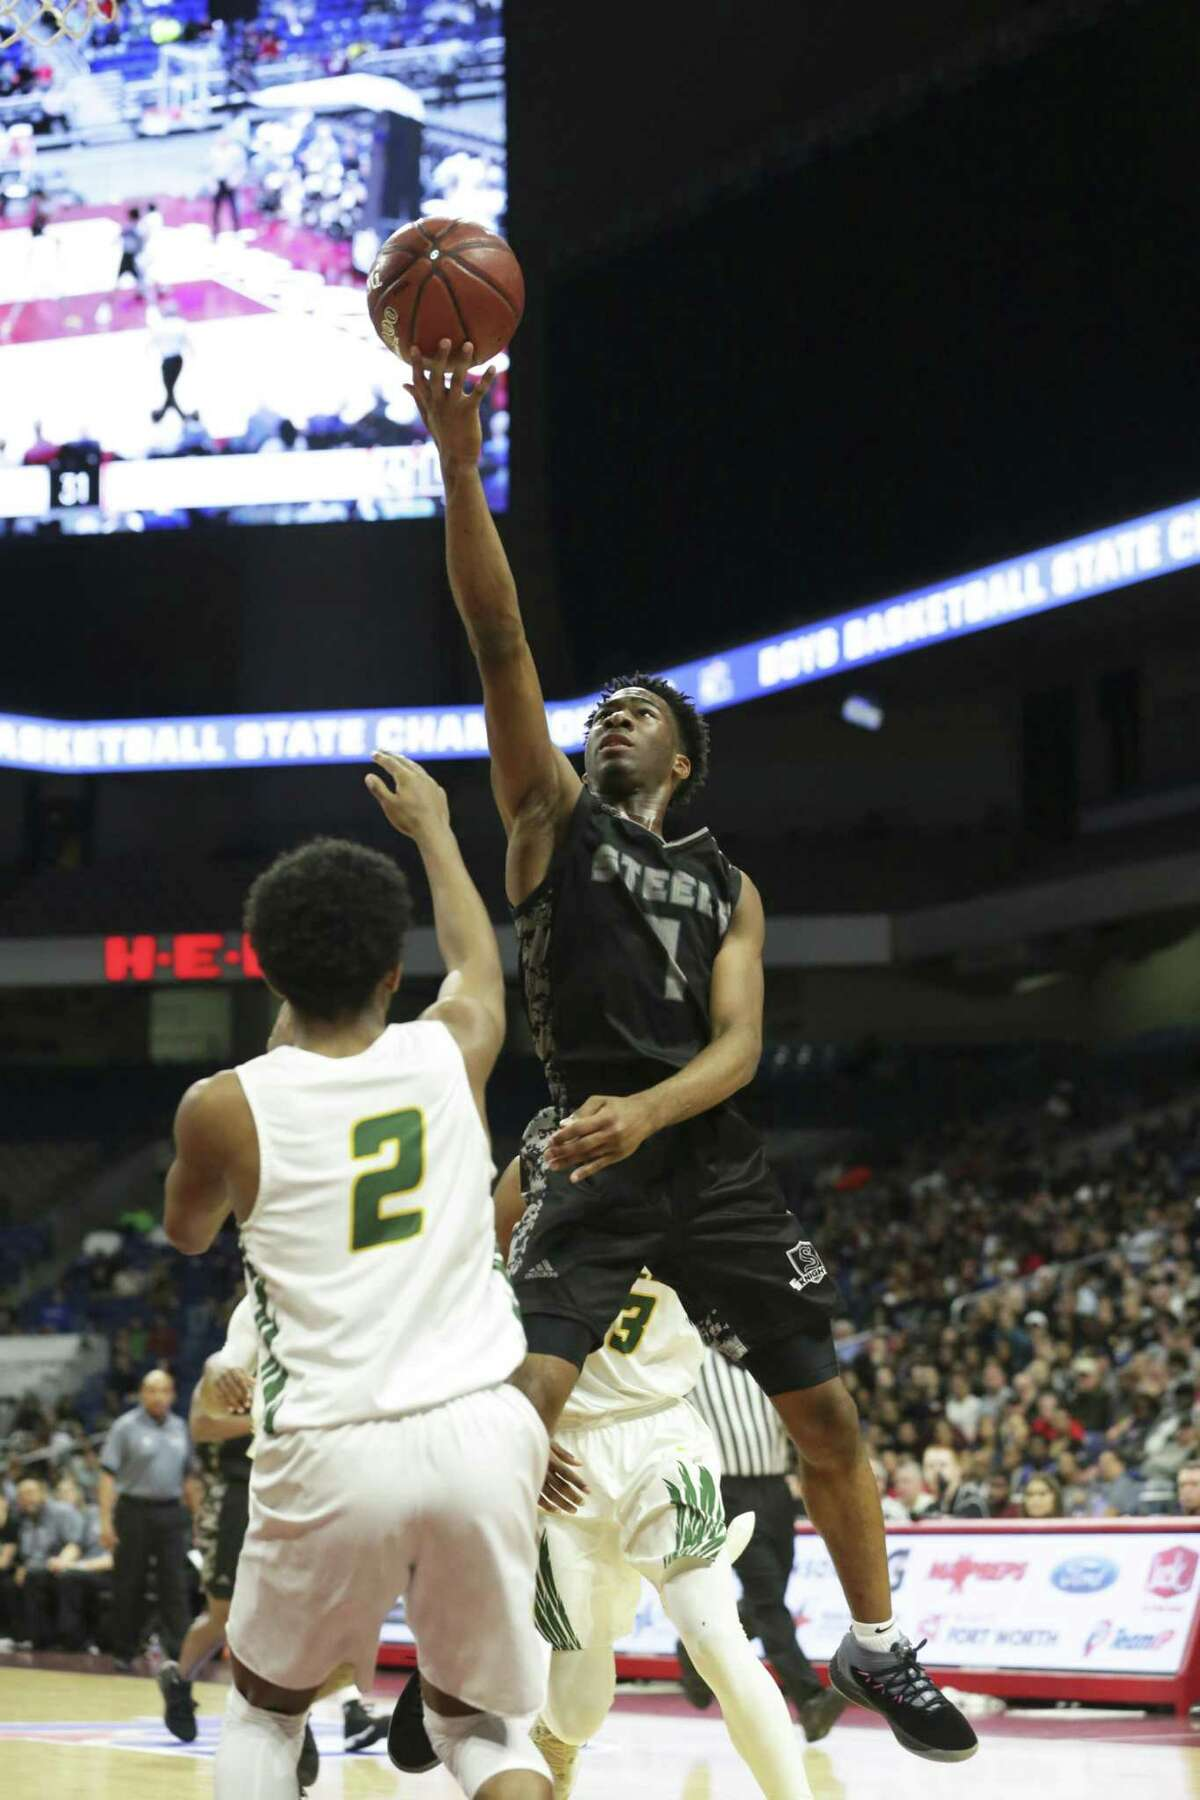 DeVaughn Rider gets off a runner over Marion Williams as Steele plays Klein Forest in the Class 6A boys state semifinal basketball game at the Alamodome on March 8, 2019.